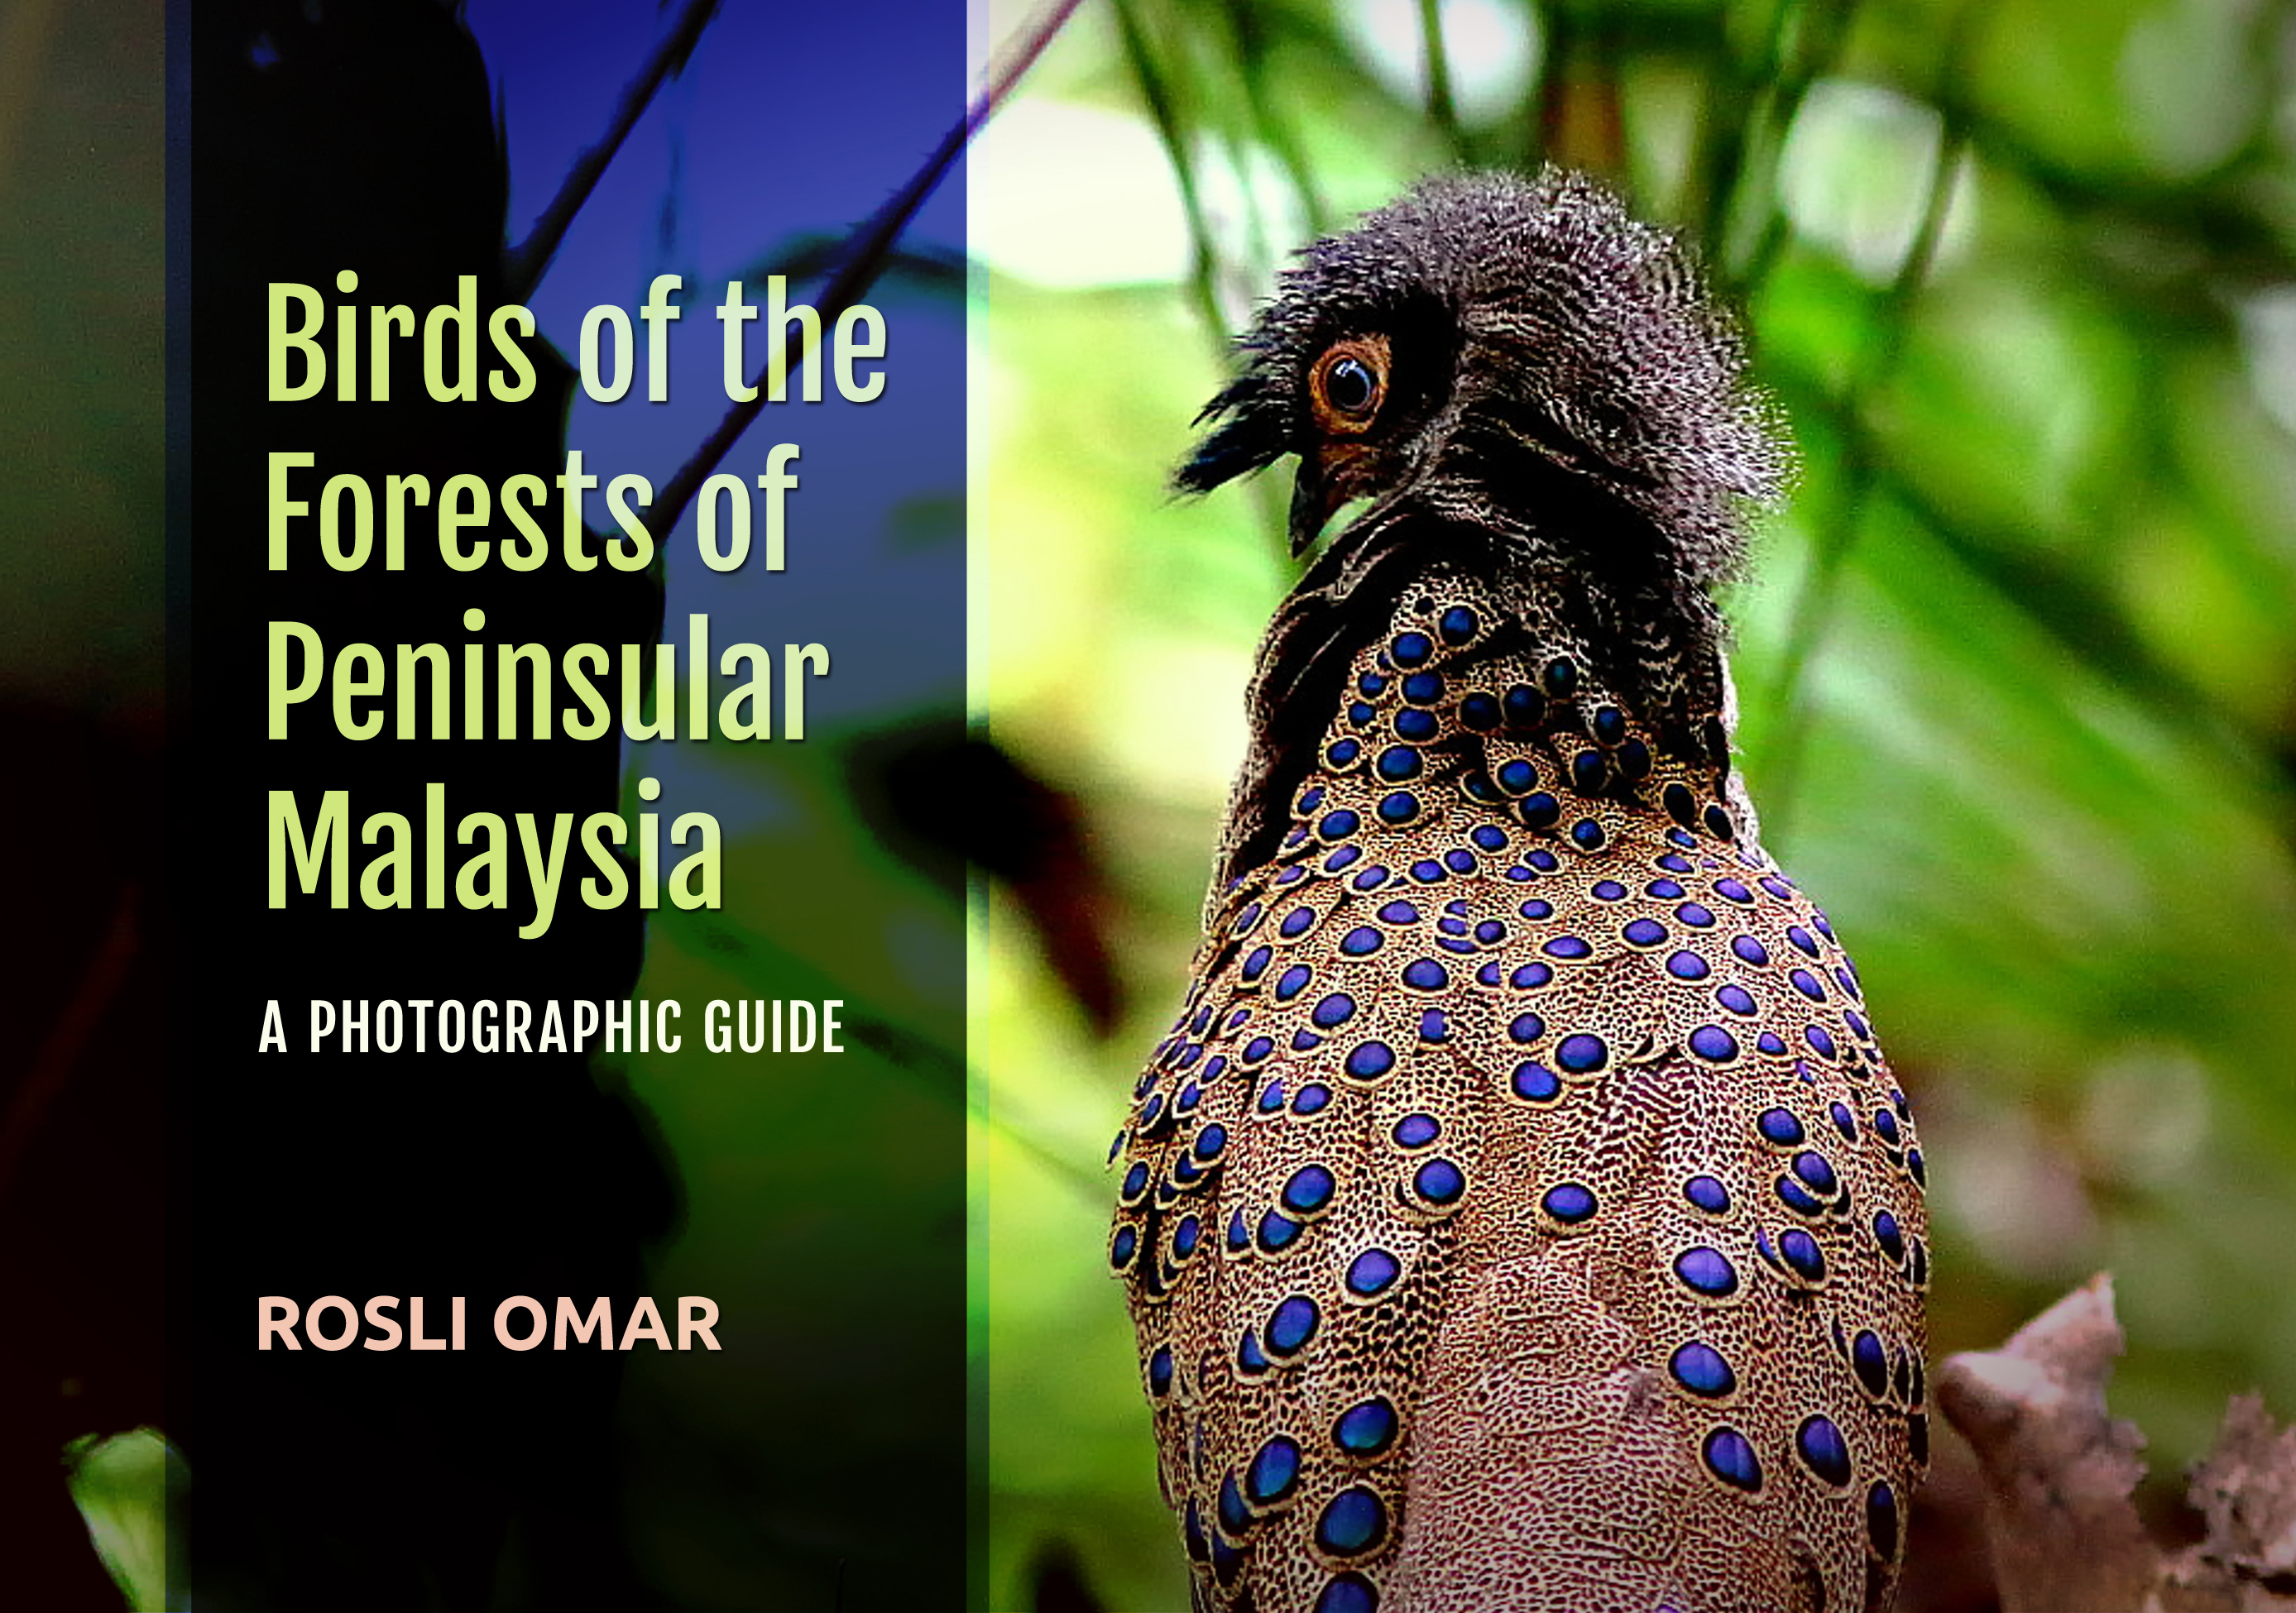 Birds of the Forests of Peninsular Malaysia: A Photographic Guide (Hardcover)